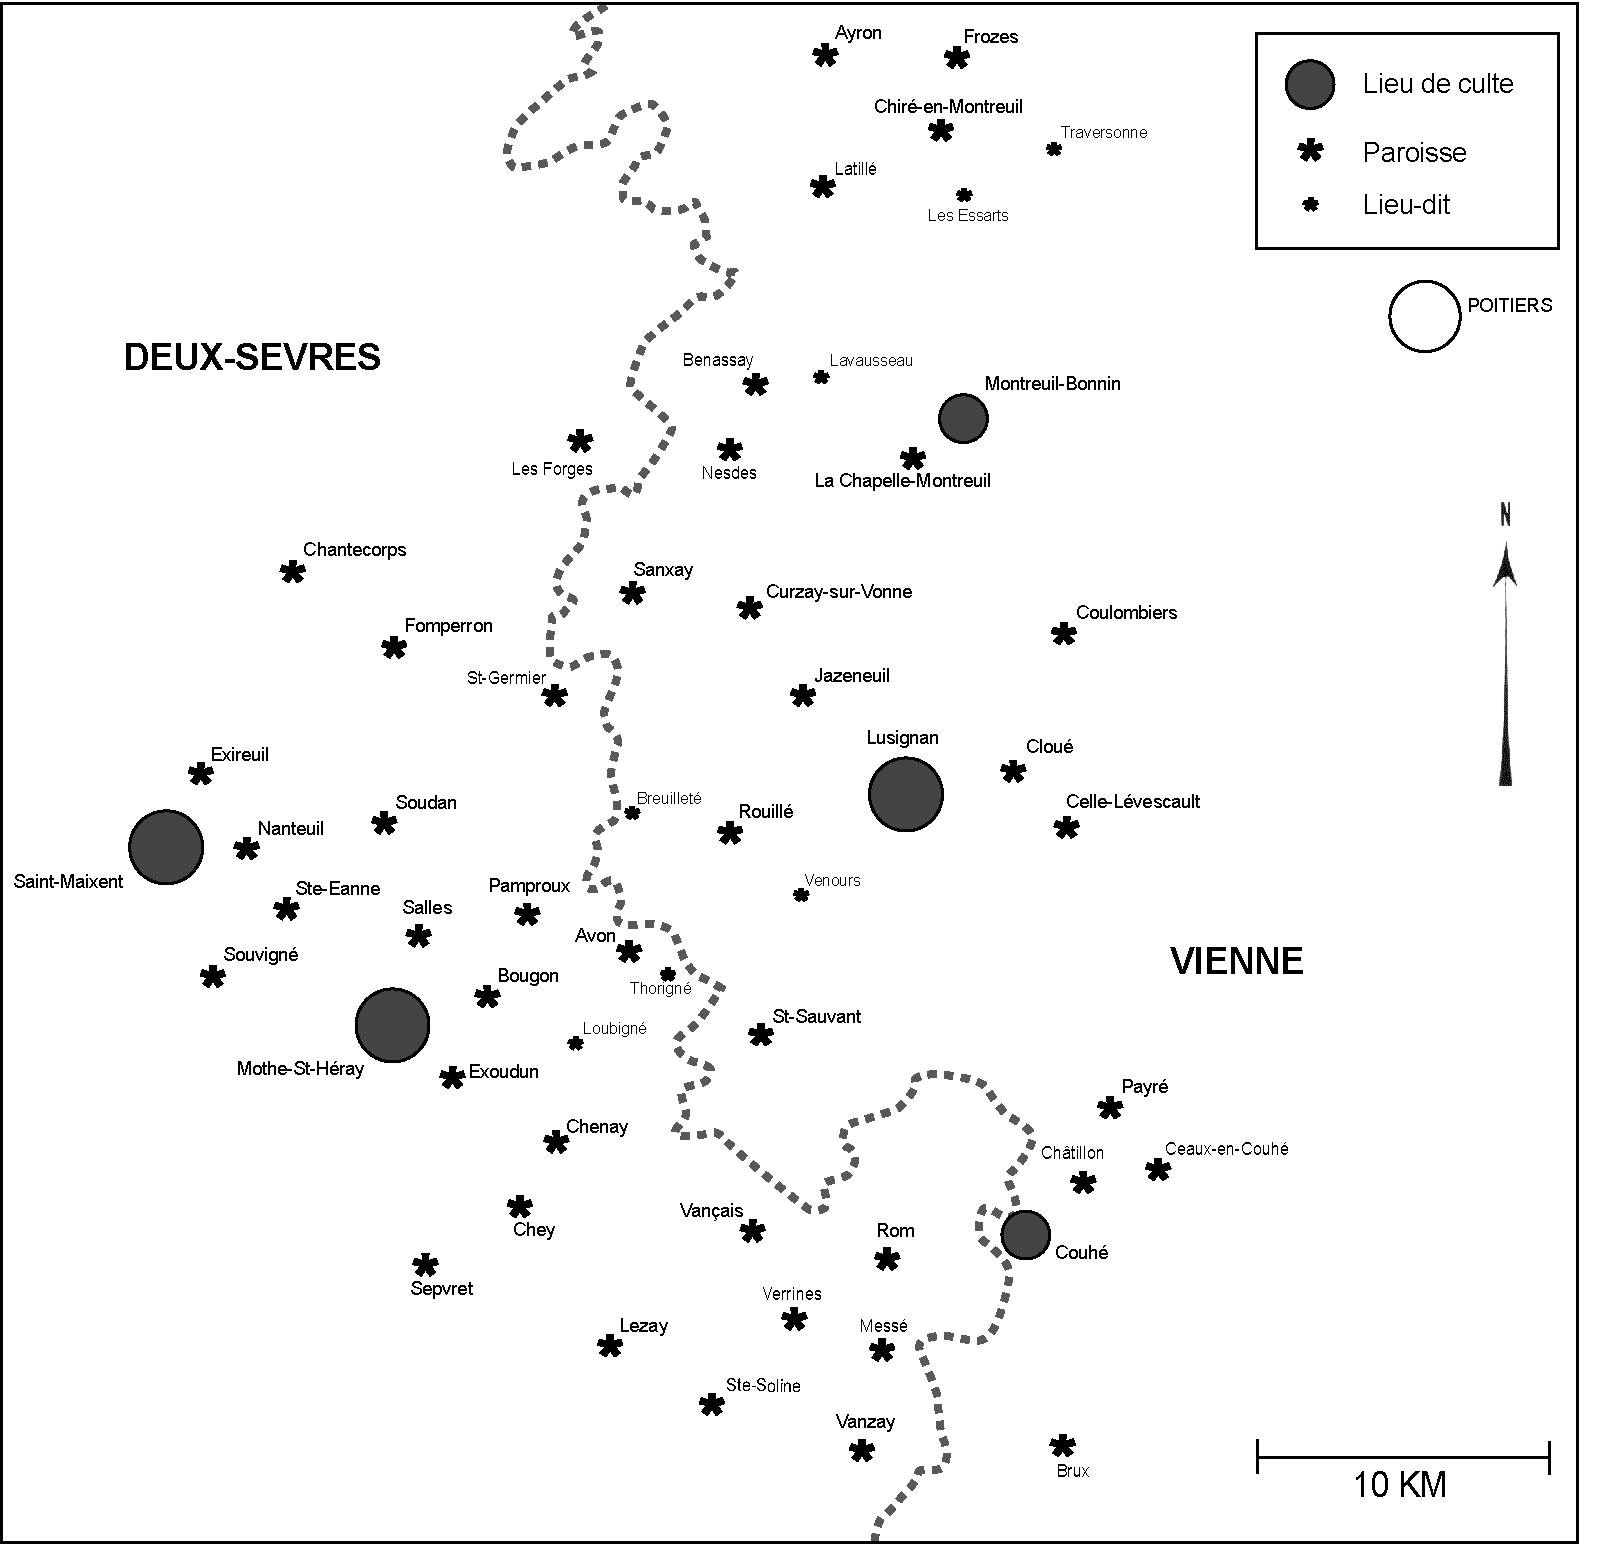 map of the area studied